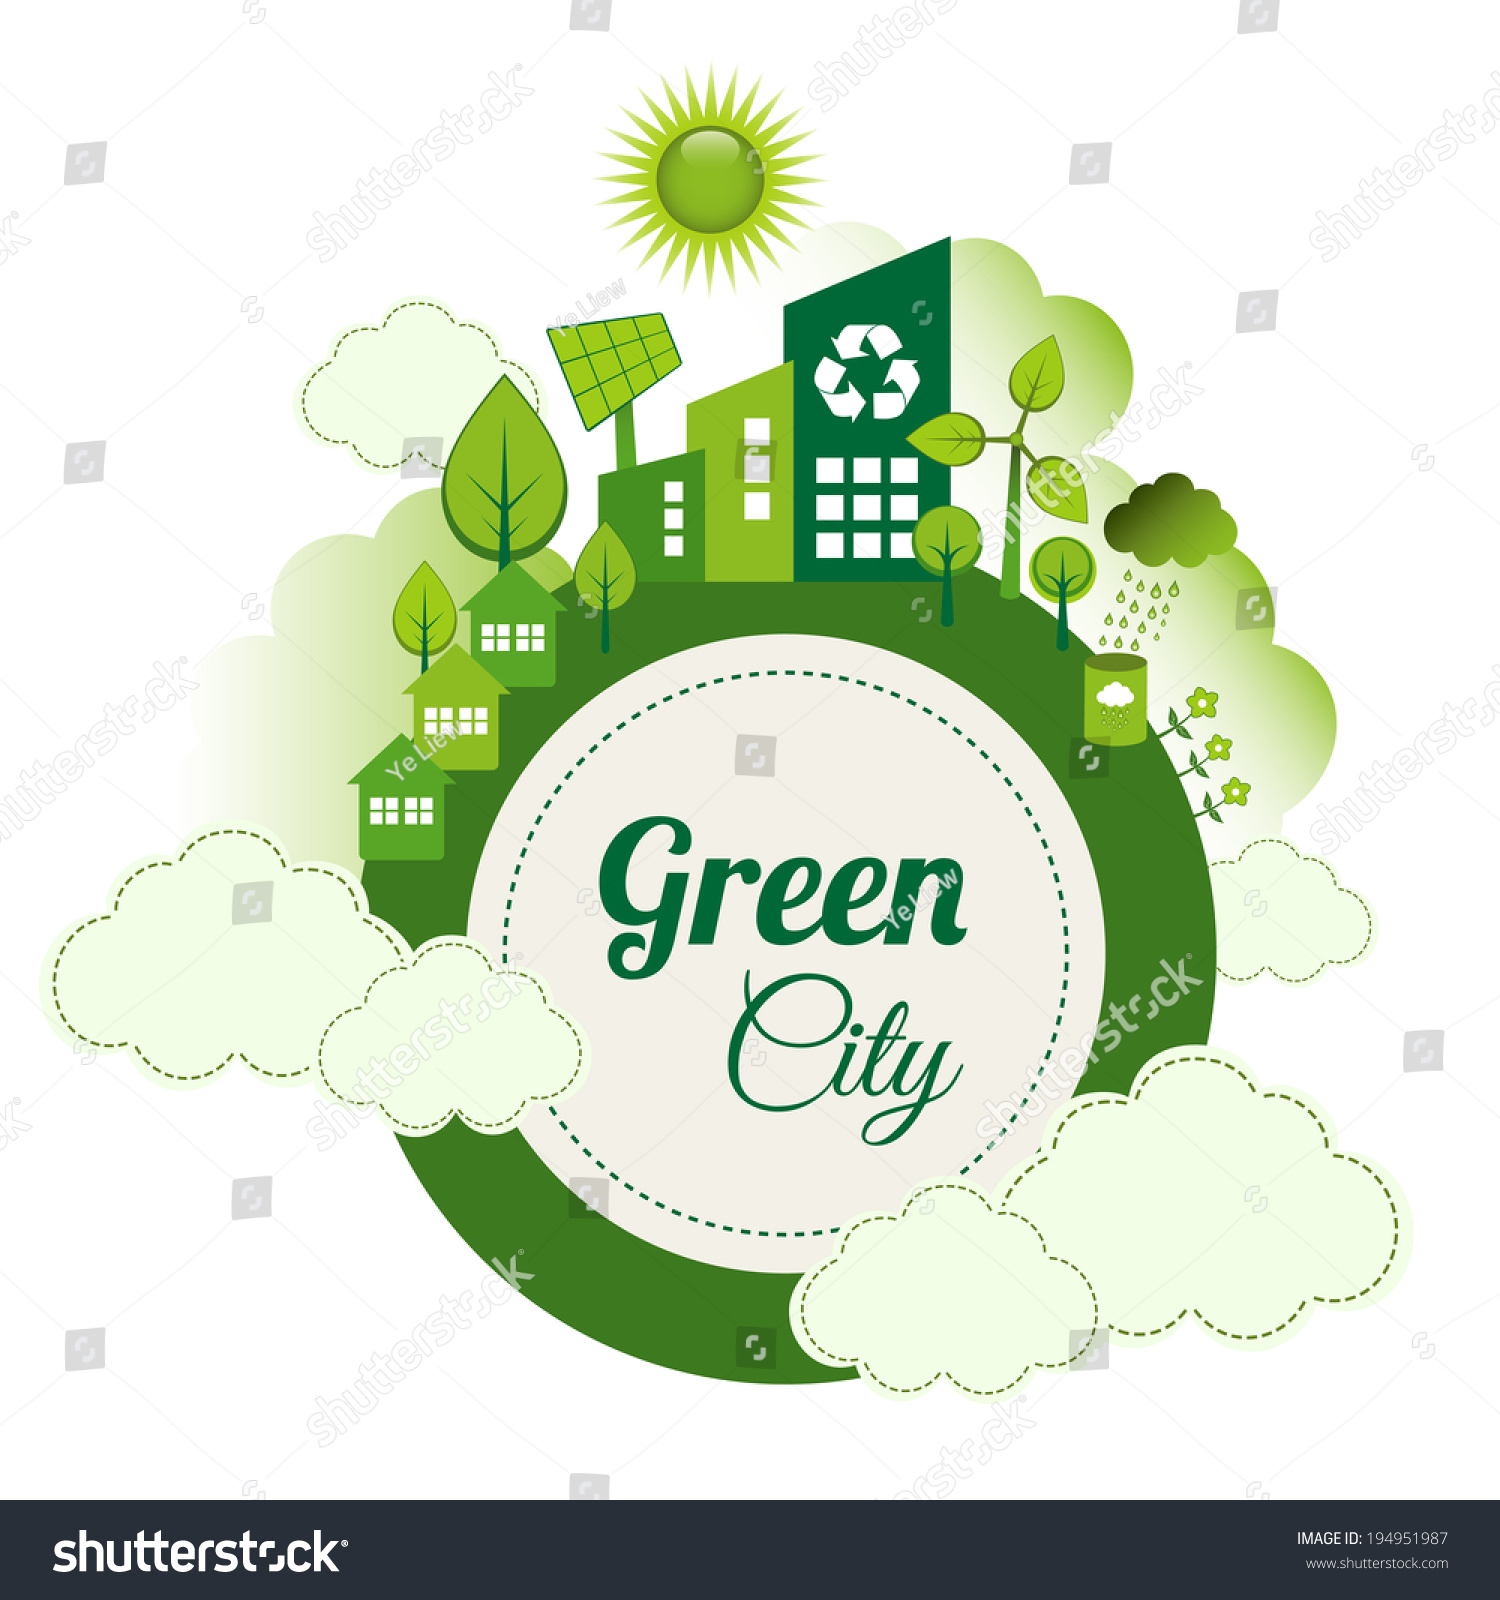 green eco city living concept stock vector illustration 194951987 shutterstock. Black Bedroom Furniture Sets. Home Design Ideas